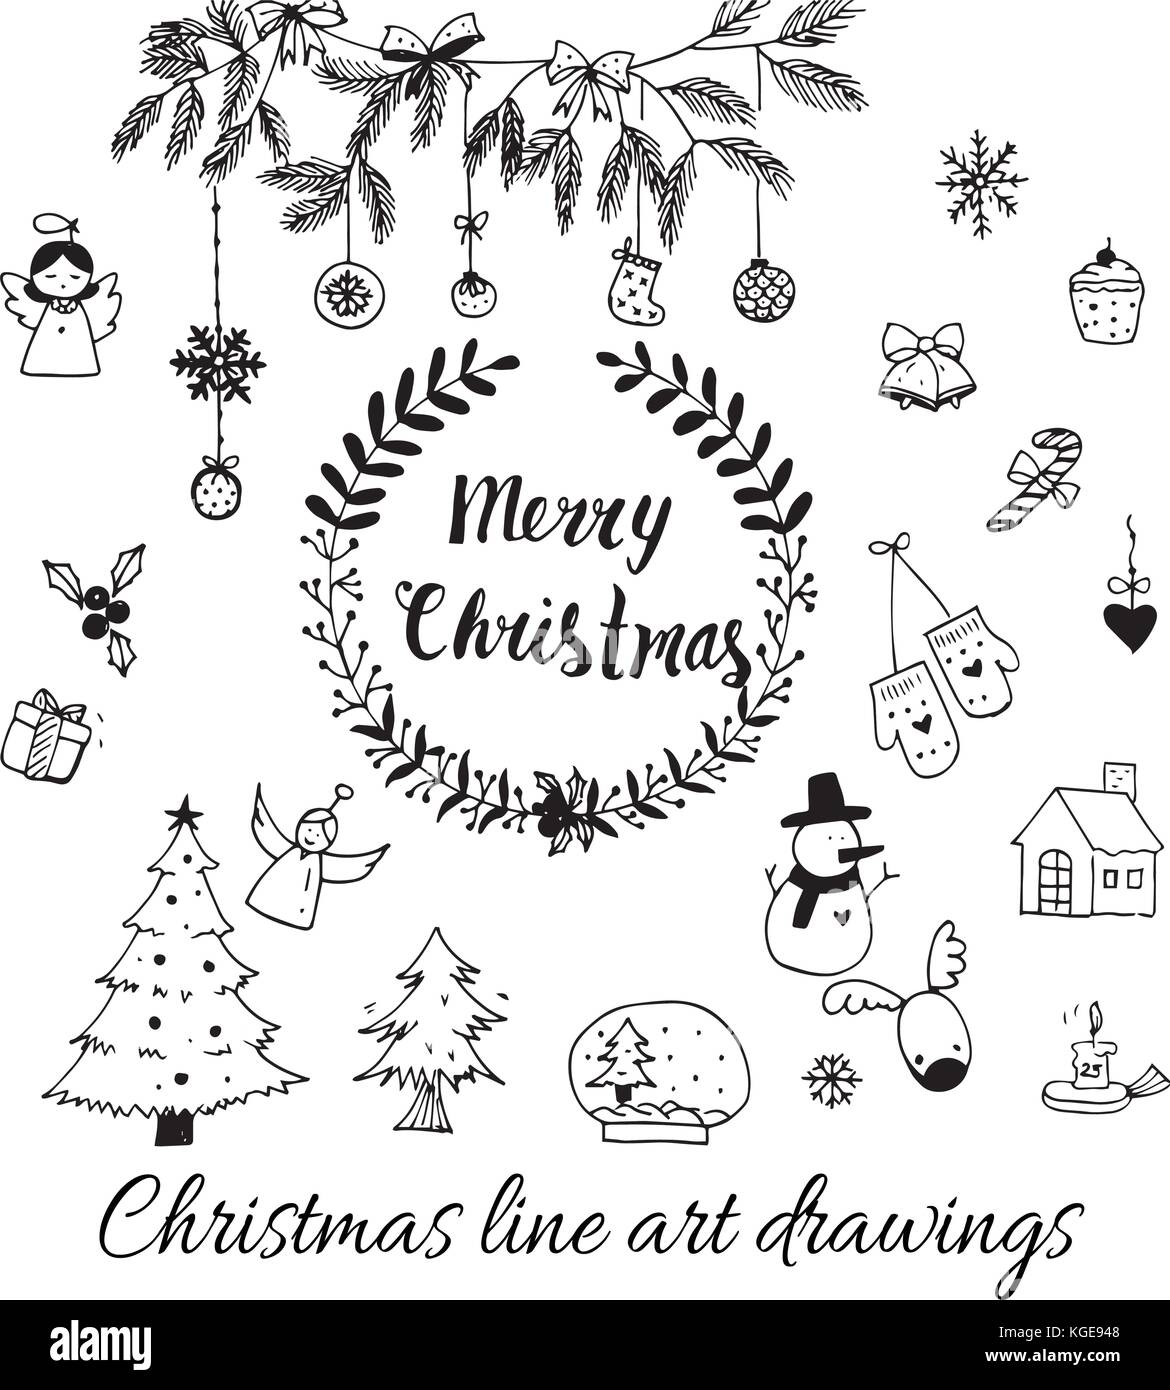 Christmas Present Drawings.Hand Drawn Doodle Vector Christmas Line Art Drawings In